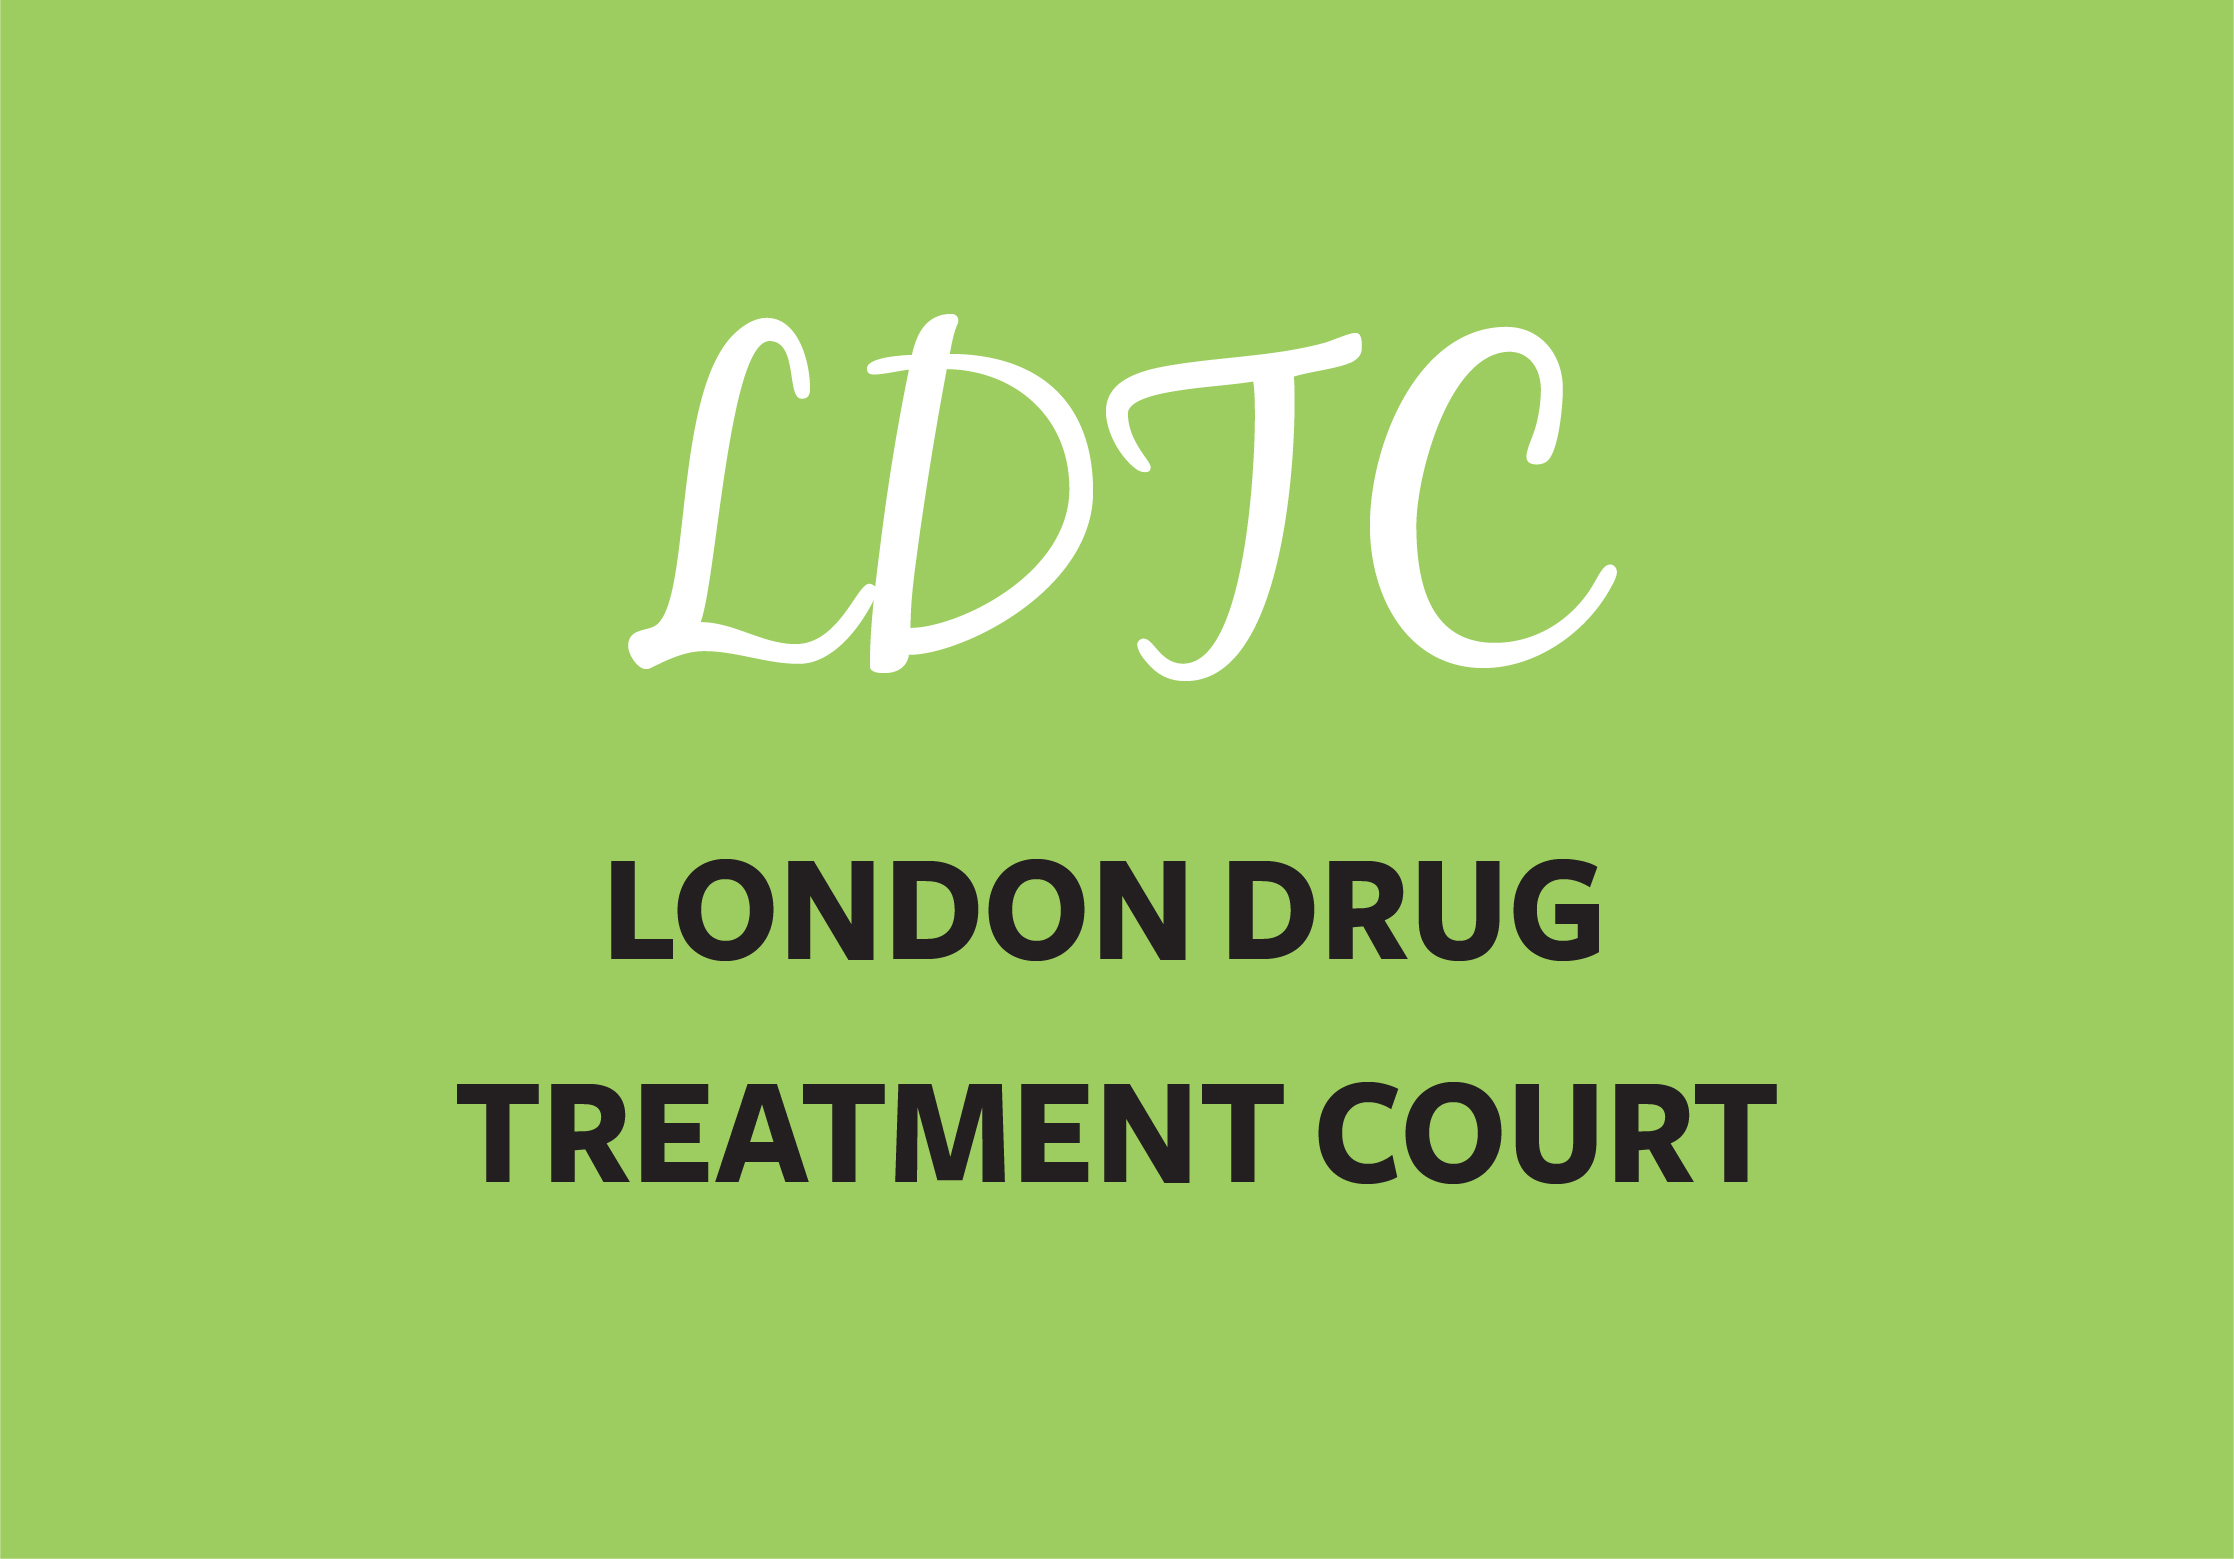 Link to London Drug Treatment Court page